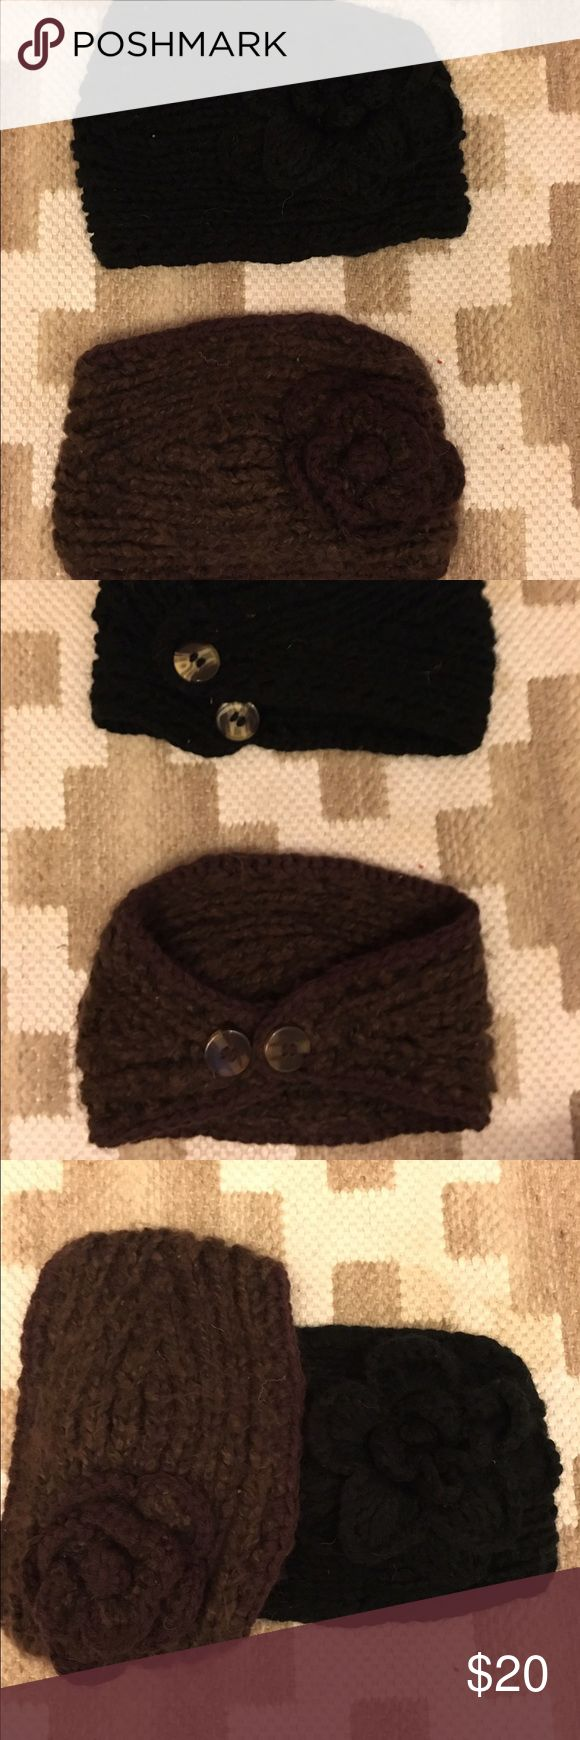 Crocheted beanie Like new! Worn maybe once. These will be sold as a pair. One black and one brown. LOOK CLOSELY to see the flower on the black beanie (sorry it's hard to see). Both beanies have a flower on them and adjustable buttons in the back adding a little extra flair! These fit around your ears and forehead like a headband/earmuffs. Accessories Hats